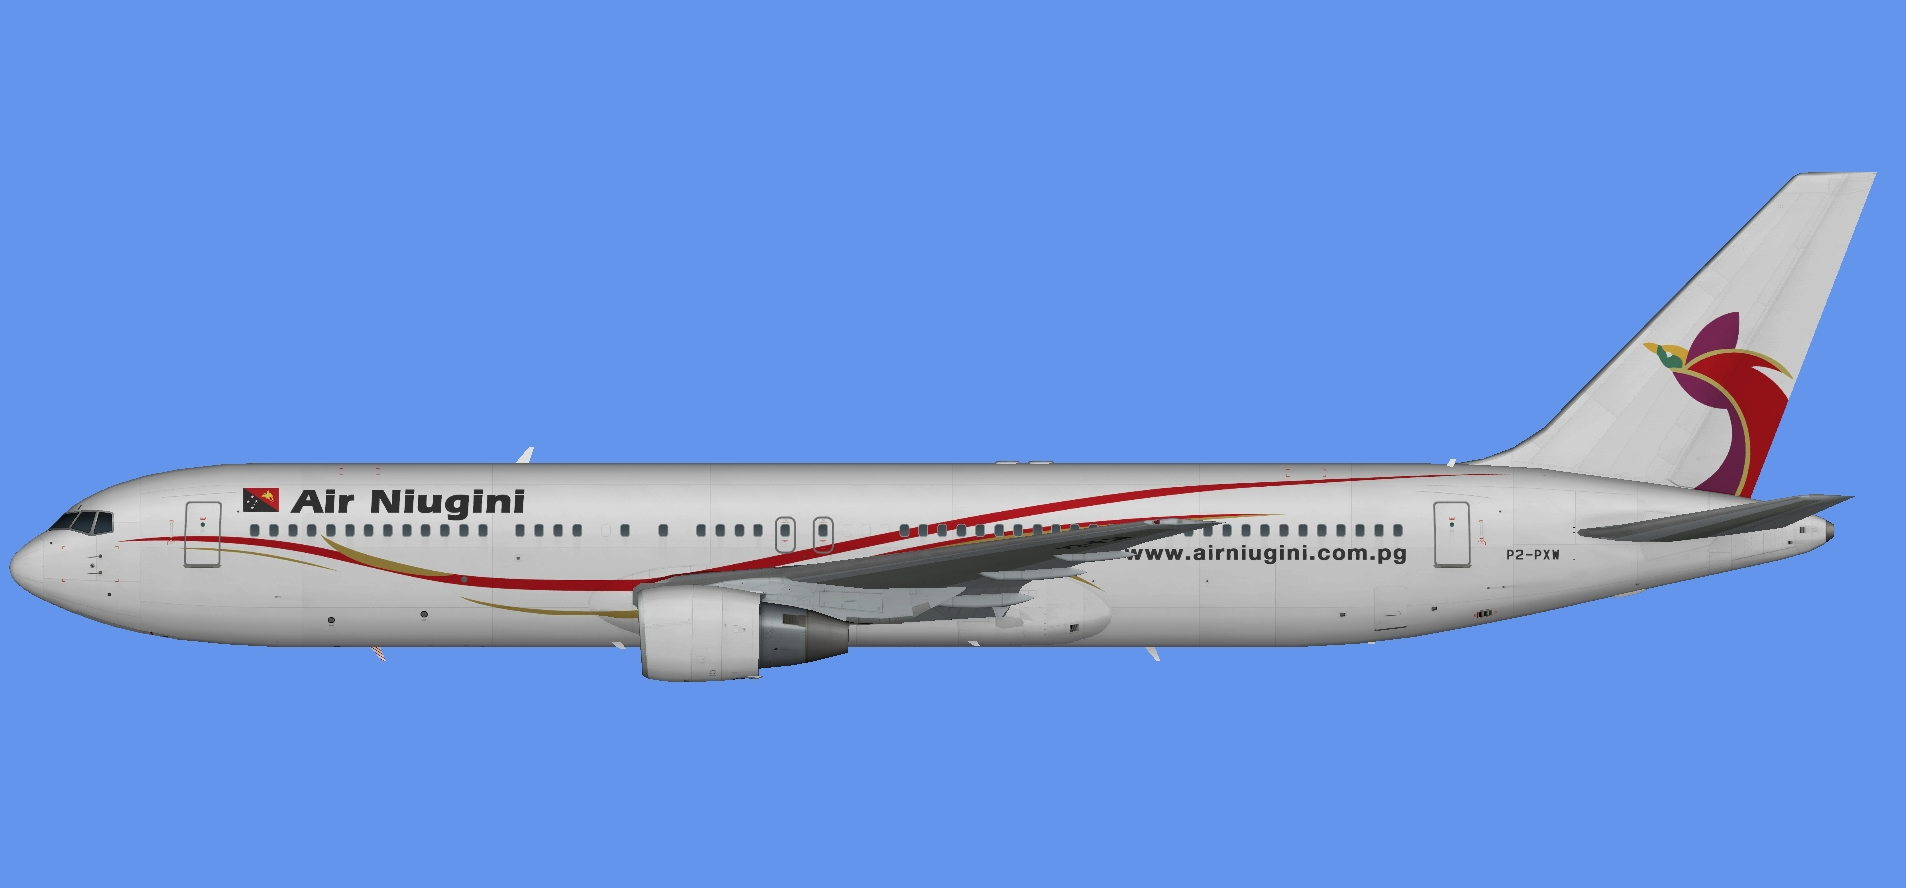 Air Niugini 767-300 PW